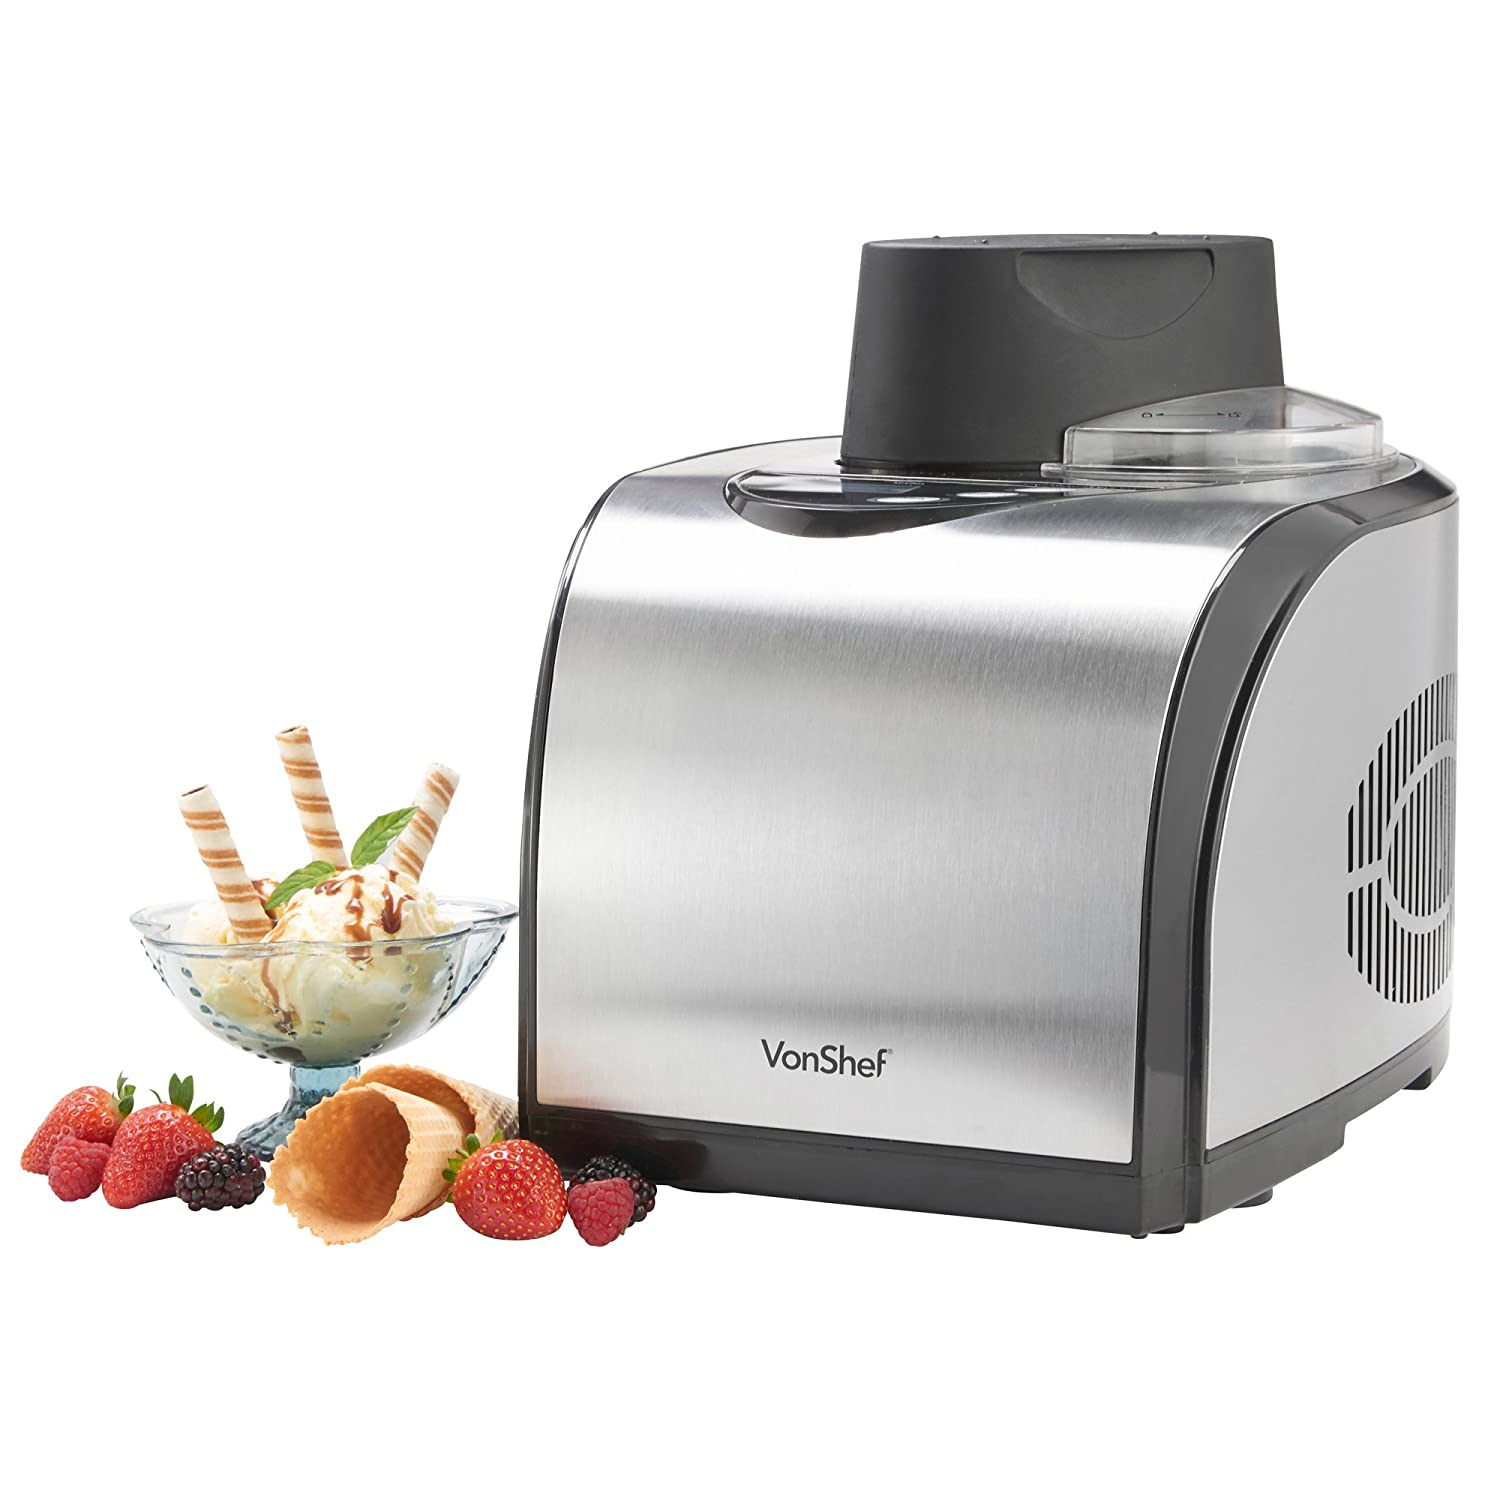 VonShef Professional: An Automatic Ice Cream Maker - The Smart Choice